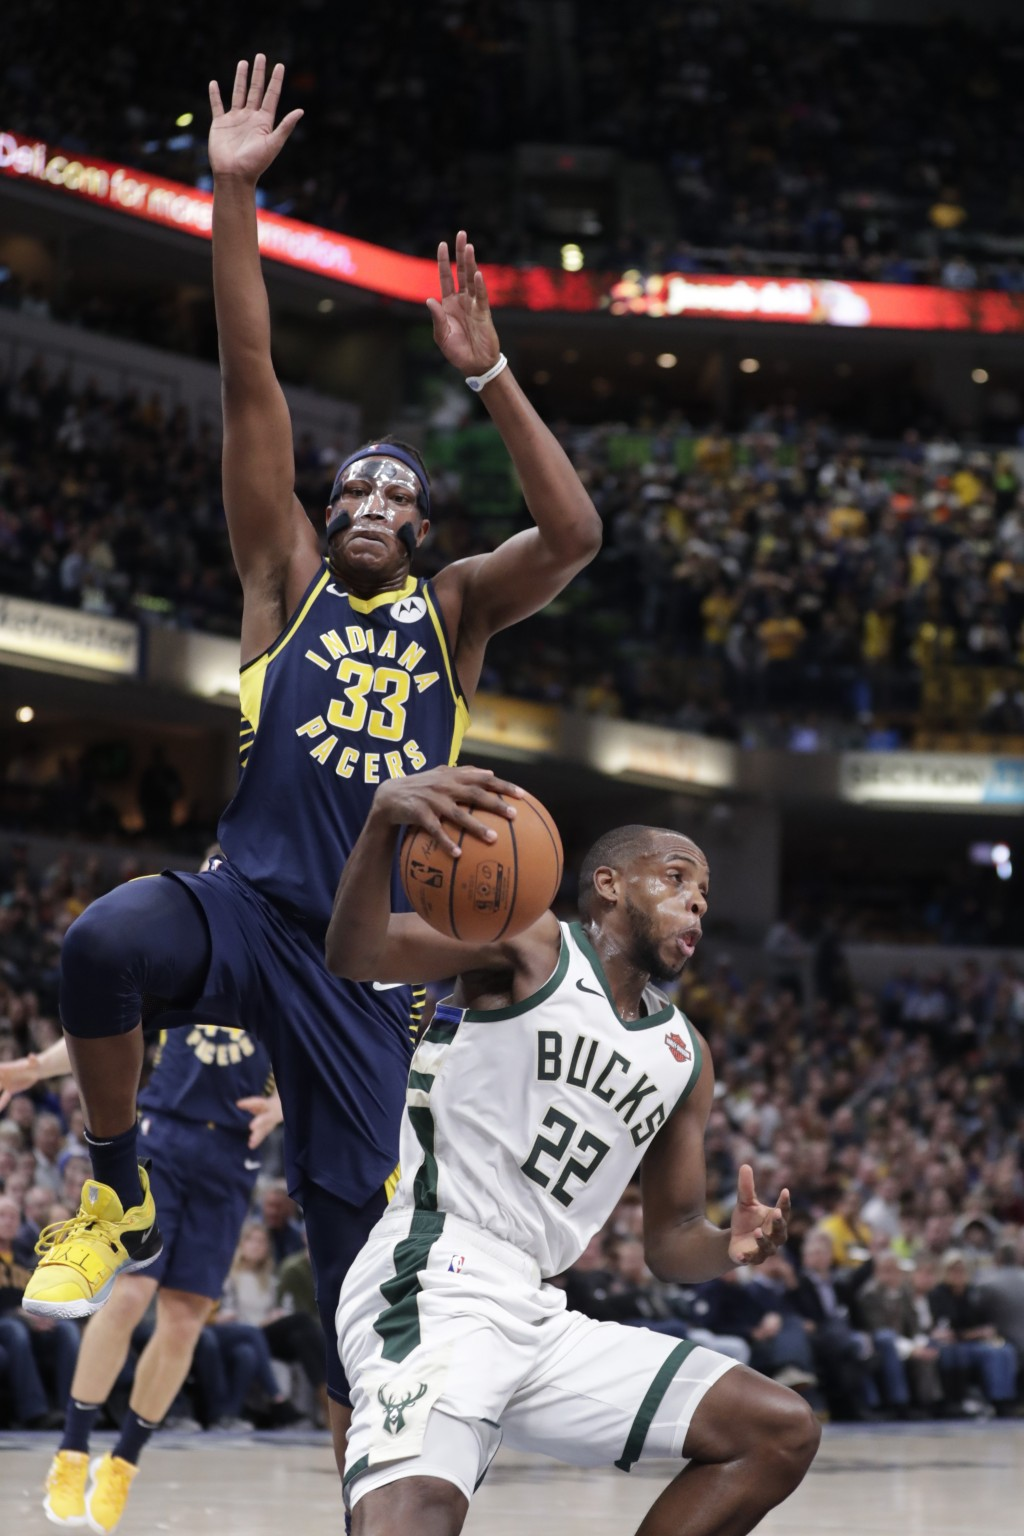 Milwaukee Bucks forward Khris Middleton (22) fakes under Indiana Pacers center Myles Turner (33) during the second half of an NBA basketball game in I